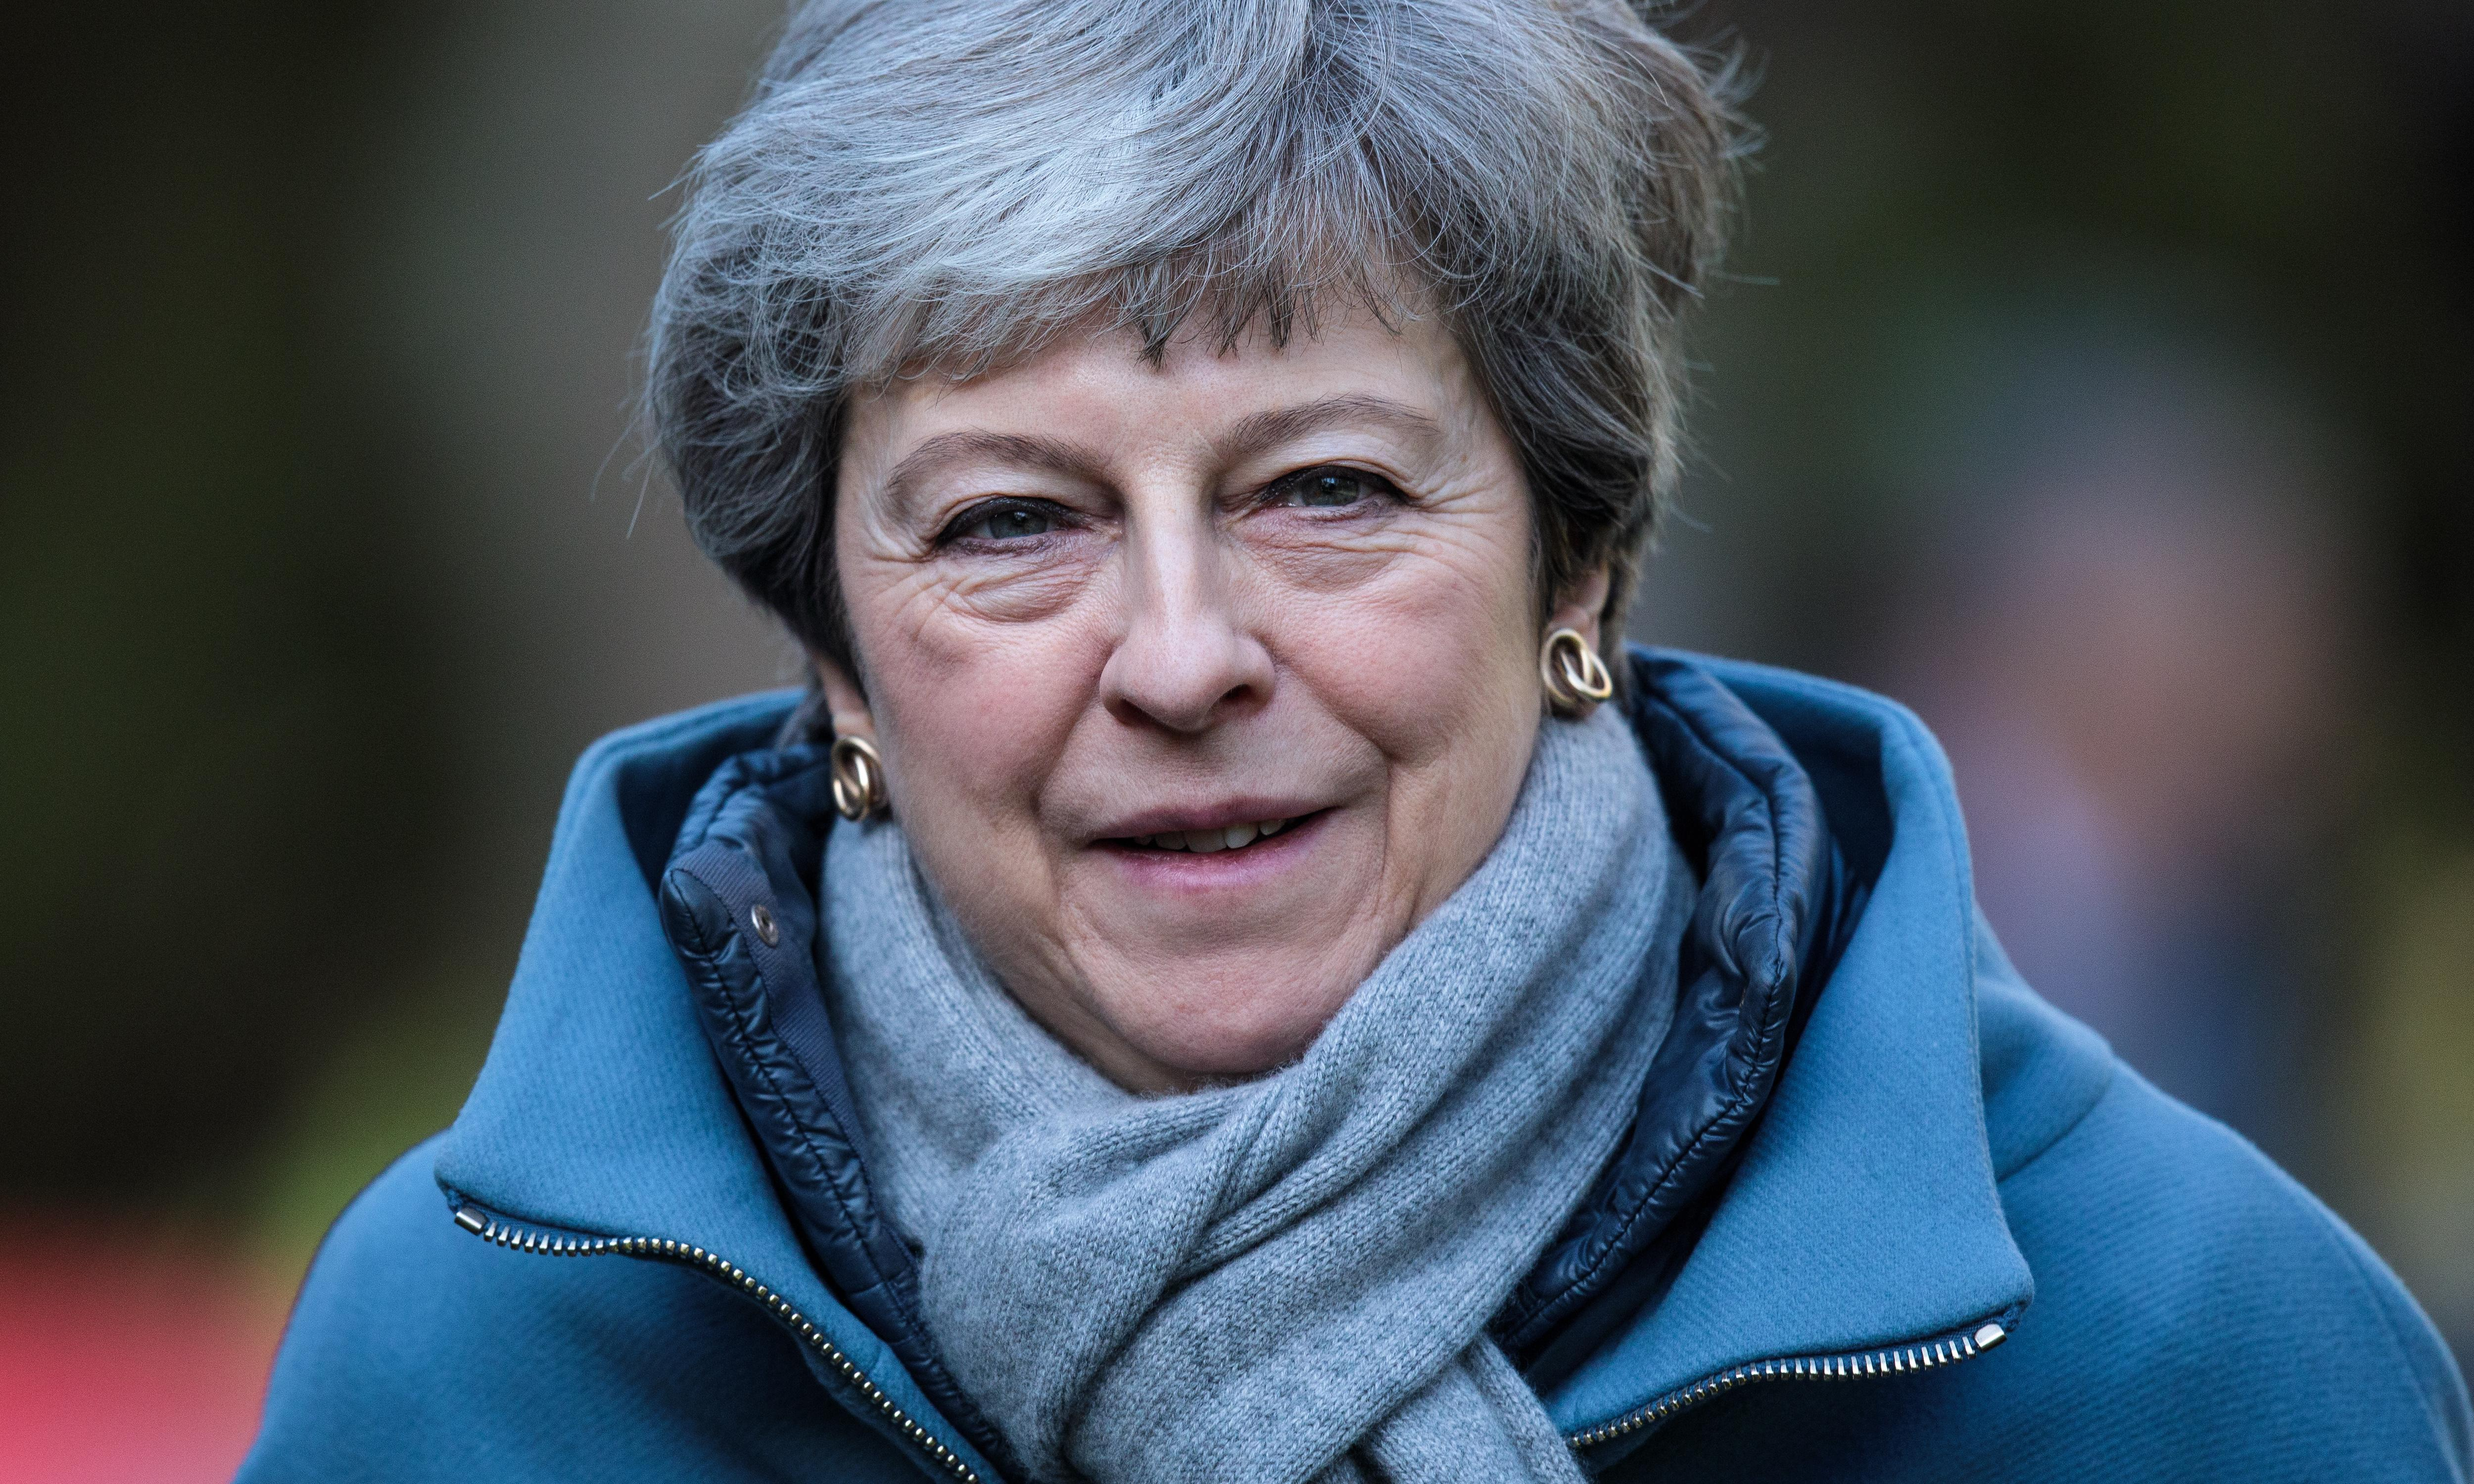 Tory coup fails to materialise as Theresa May limps on